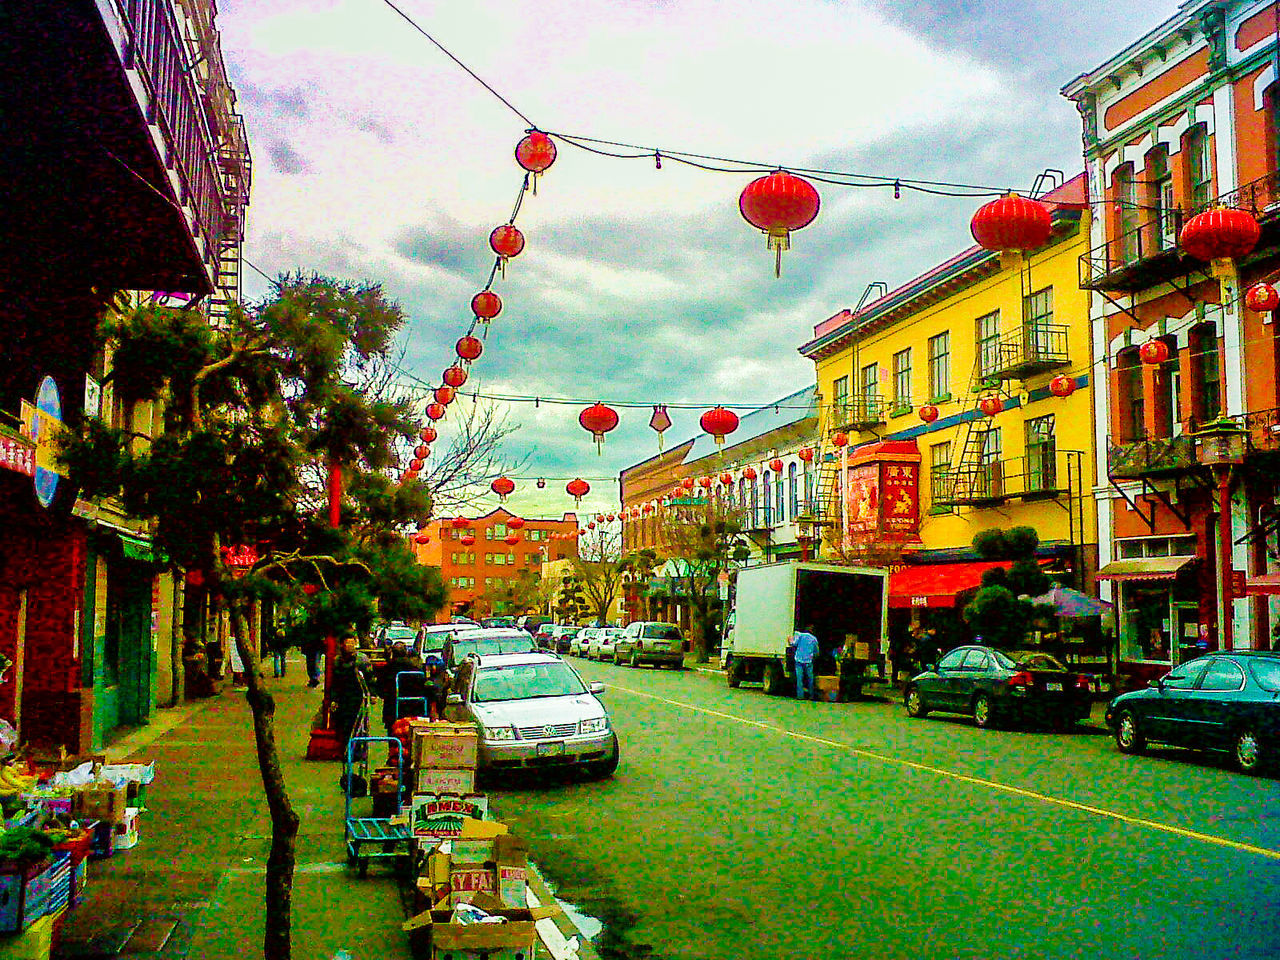 Chinese Lanterns Hanging Over City Street Against Sky